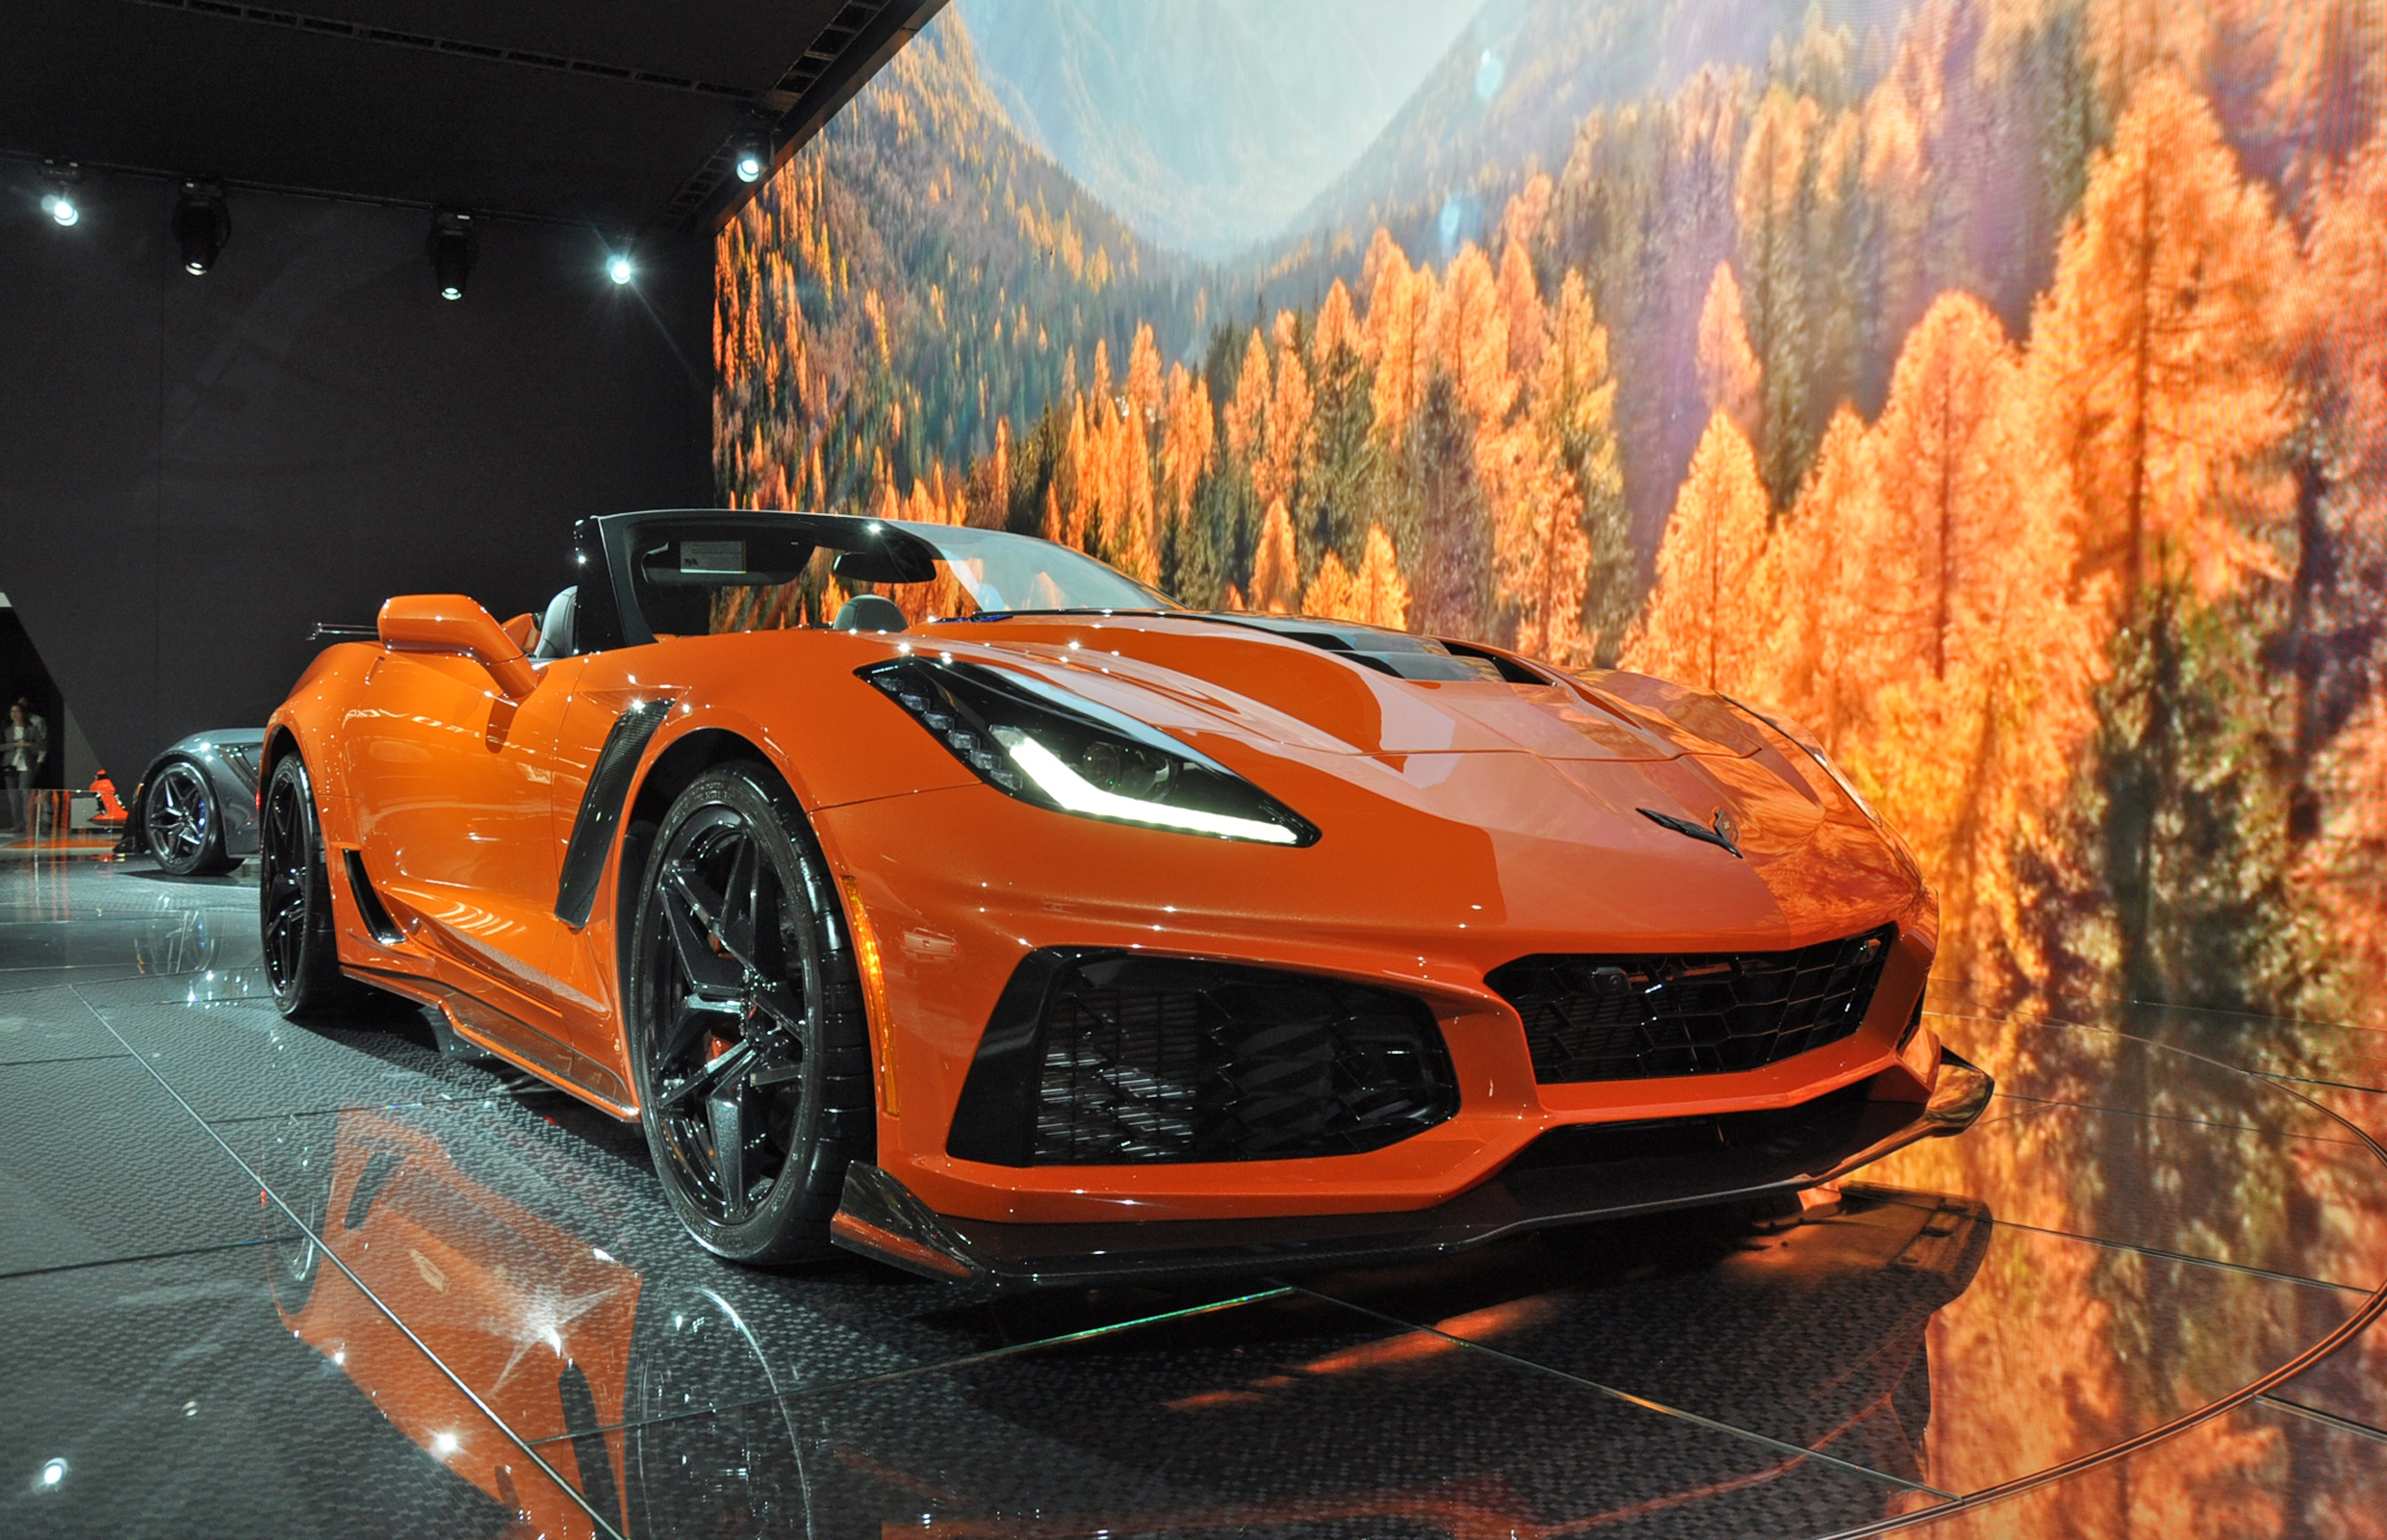 2019 Chevrolet Corvette ZR-1 convertible